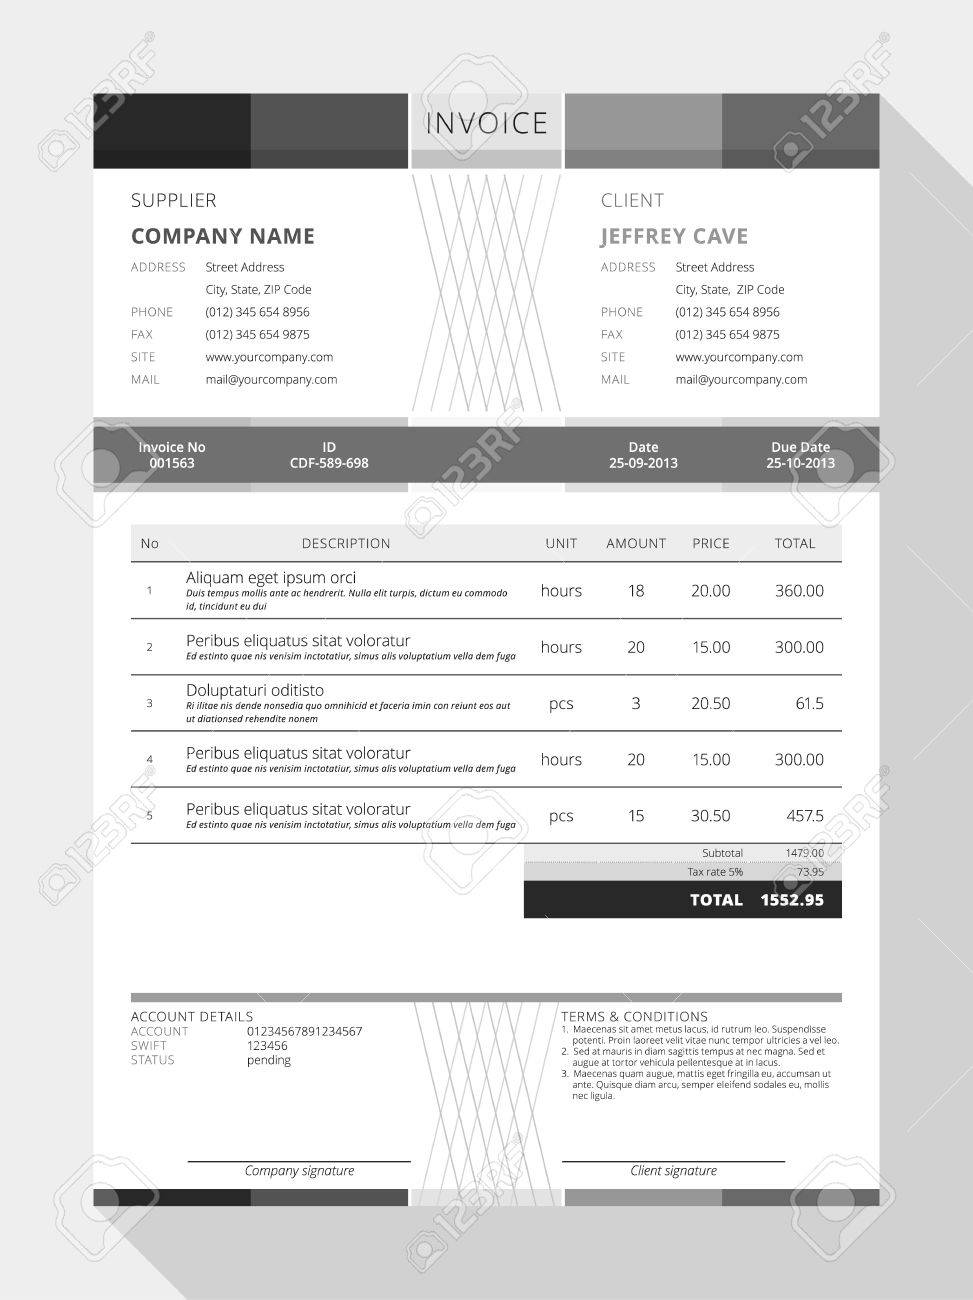 Darkfaderus  Pleasing Design An Invoice  Professional Graphic Design Invoice  With Remarkable Vector Customizable Invoice Form Template Design Vector   Design An Invoice With Lovely Receipt Organization Software Also Petition Receipt Number In Addition Payment Received Receipt Template And Plumbing Receipts As Well As Format For Payment Receipt Additionally Receipt Template For Excel From Happytomco With Darkfaderus  Remarkable Design An Invoice  Professional Graphic Design Invoice  With Lovely Vector Customizable Invoice Form Template Design Vector   Design An Invoice And Pleasing Receipt Organization Software Also Petition Receipt Number In Addition Payment Received Receipt Template From Happytomco